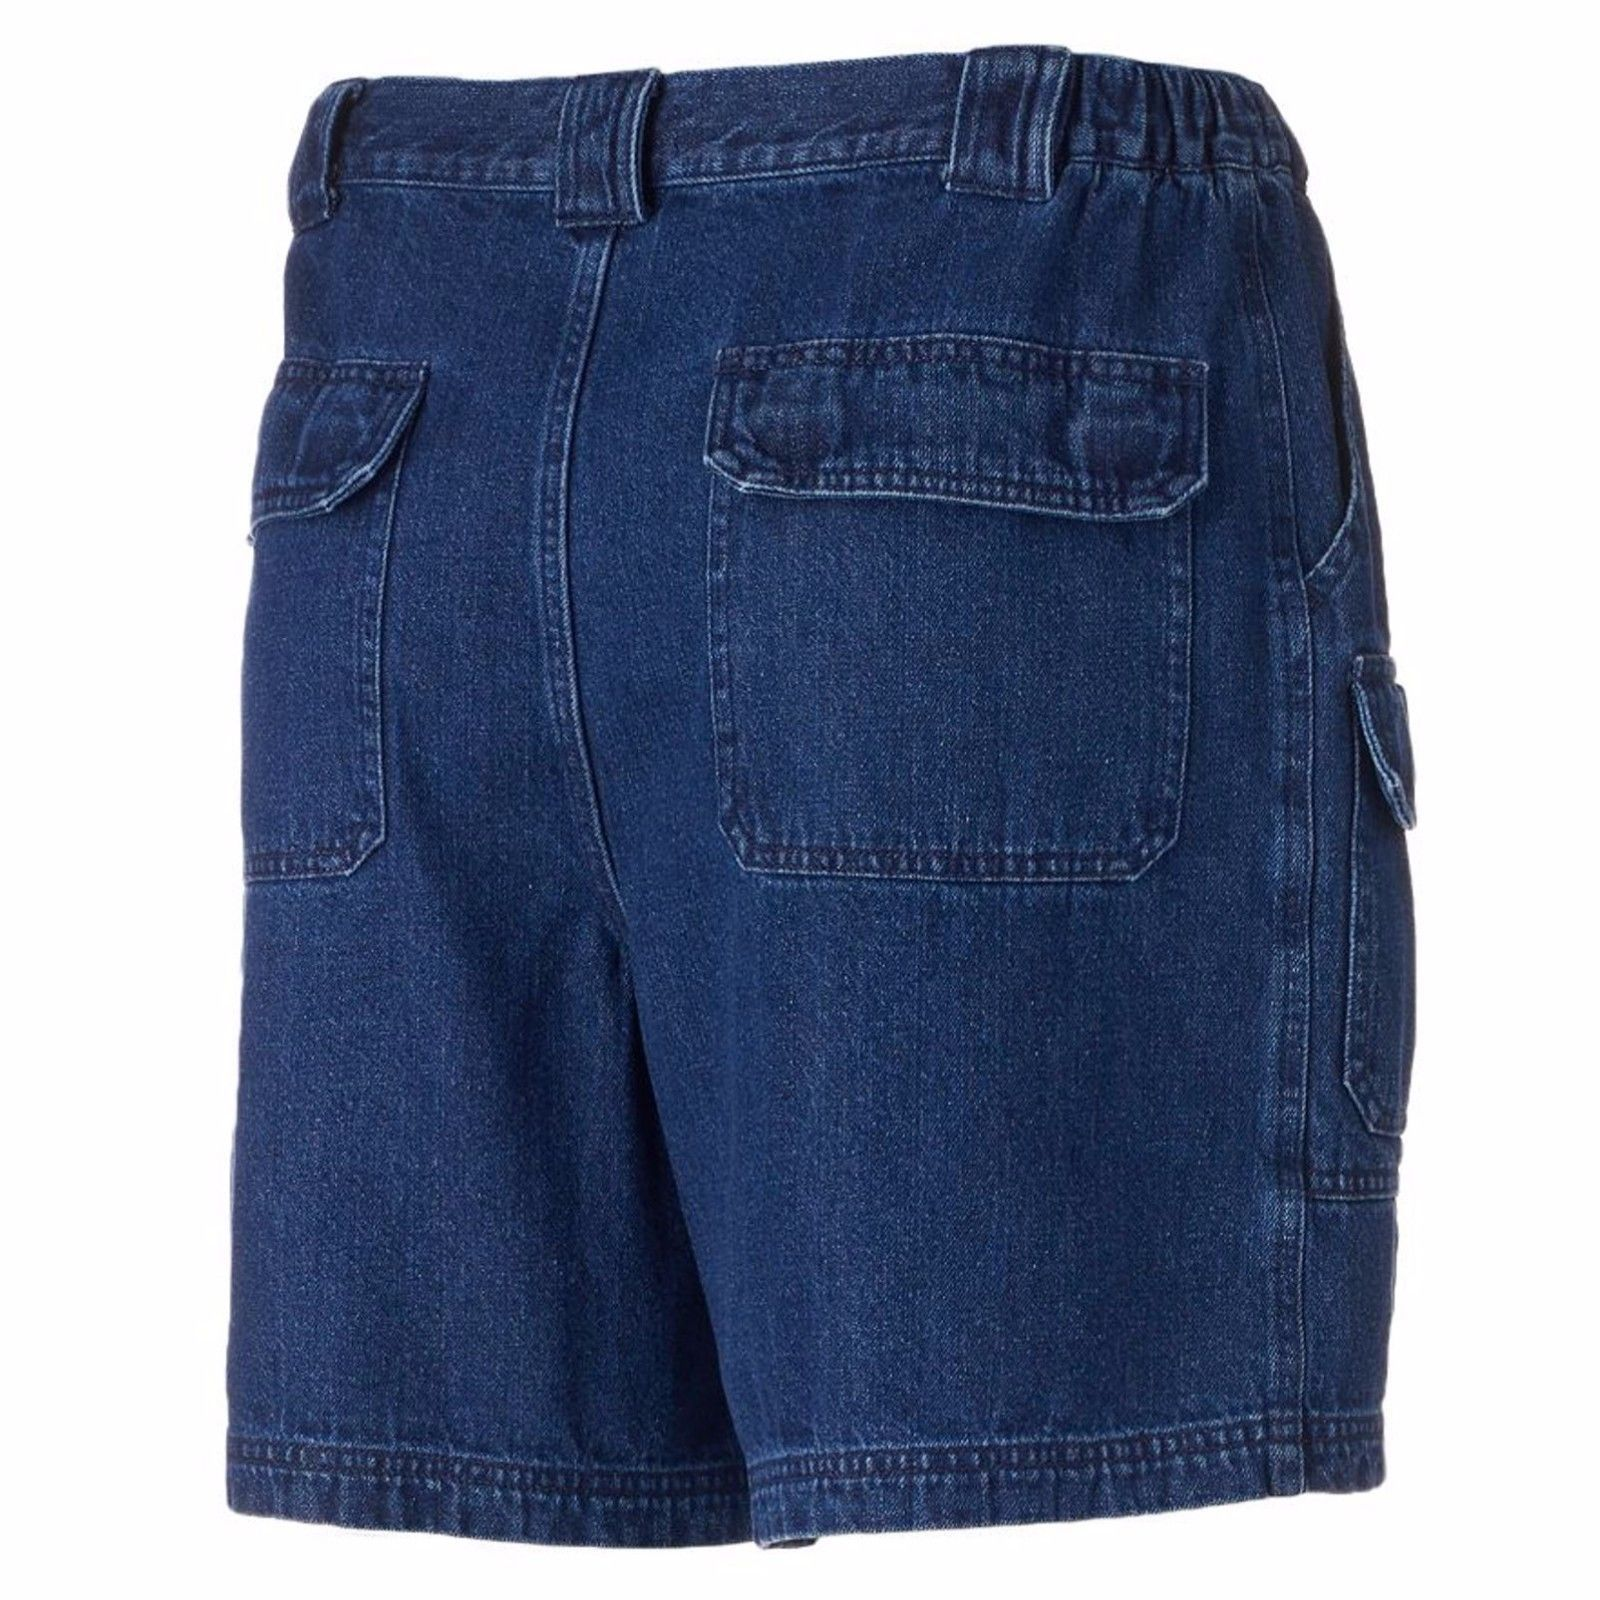 Find great deals on eBay for mens big size shorts. Shop with confidence.